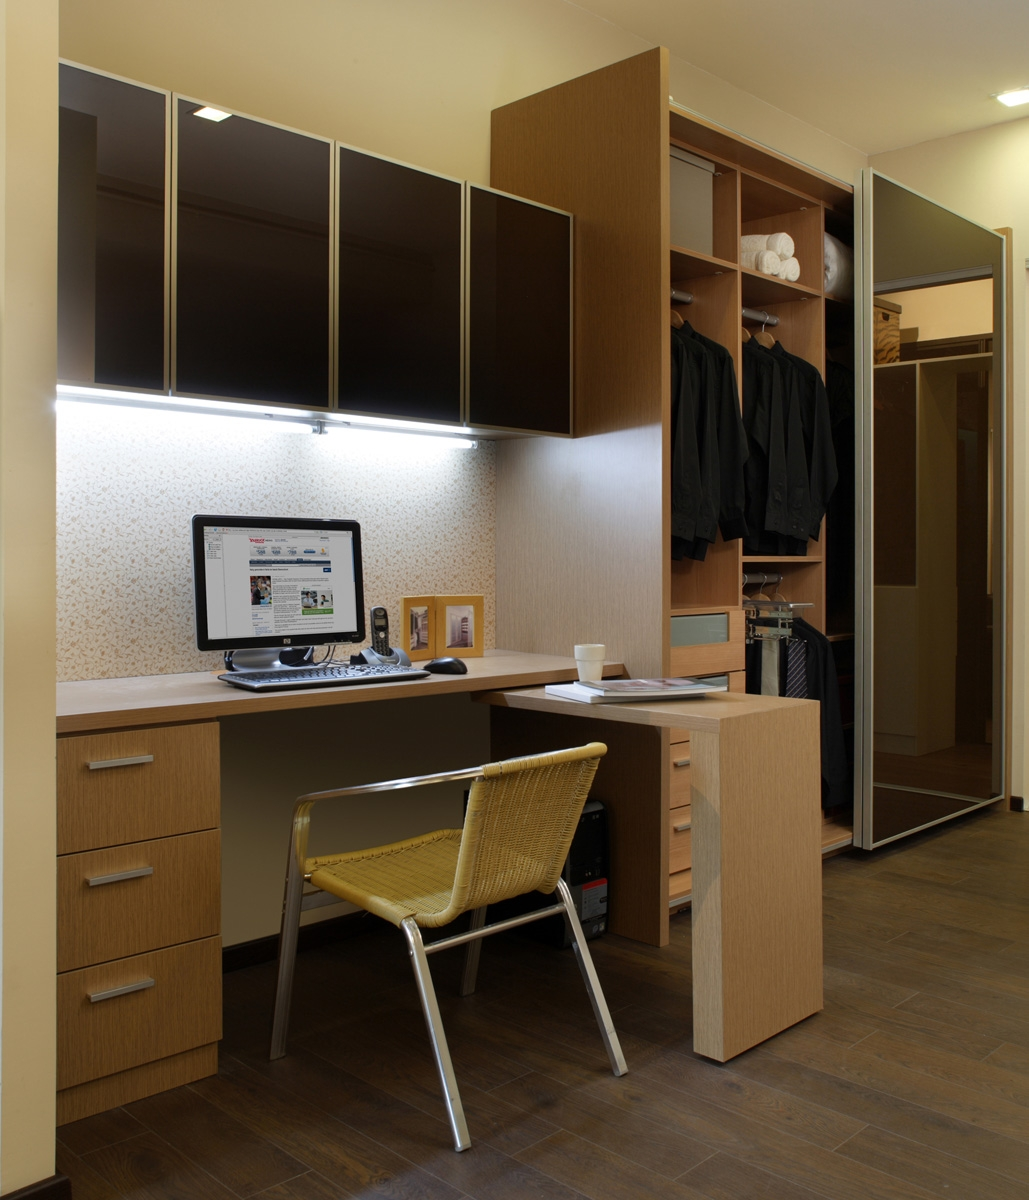 Study Table With Wall Cabinet Wardrobe Our Showroom Pinterest Pertaining To Study Cupboards (View 4 of 15)